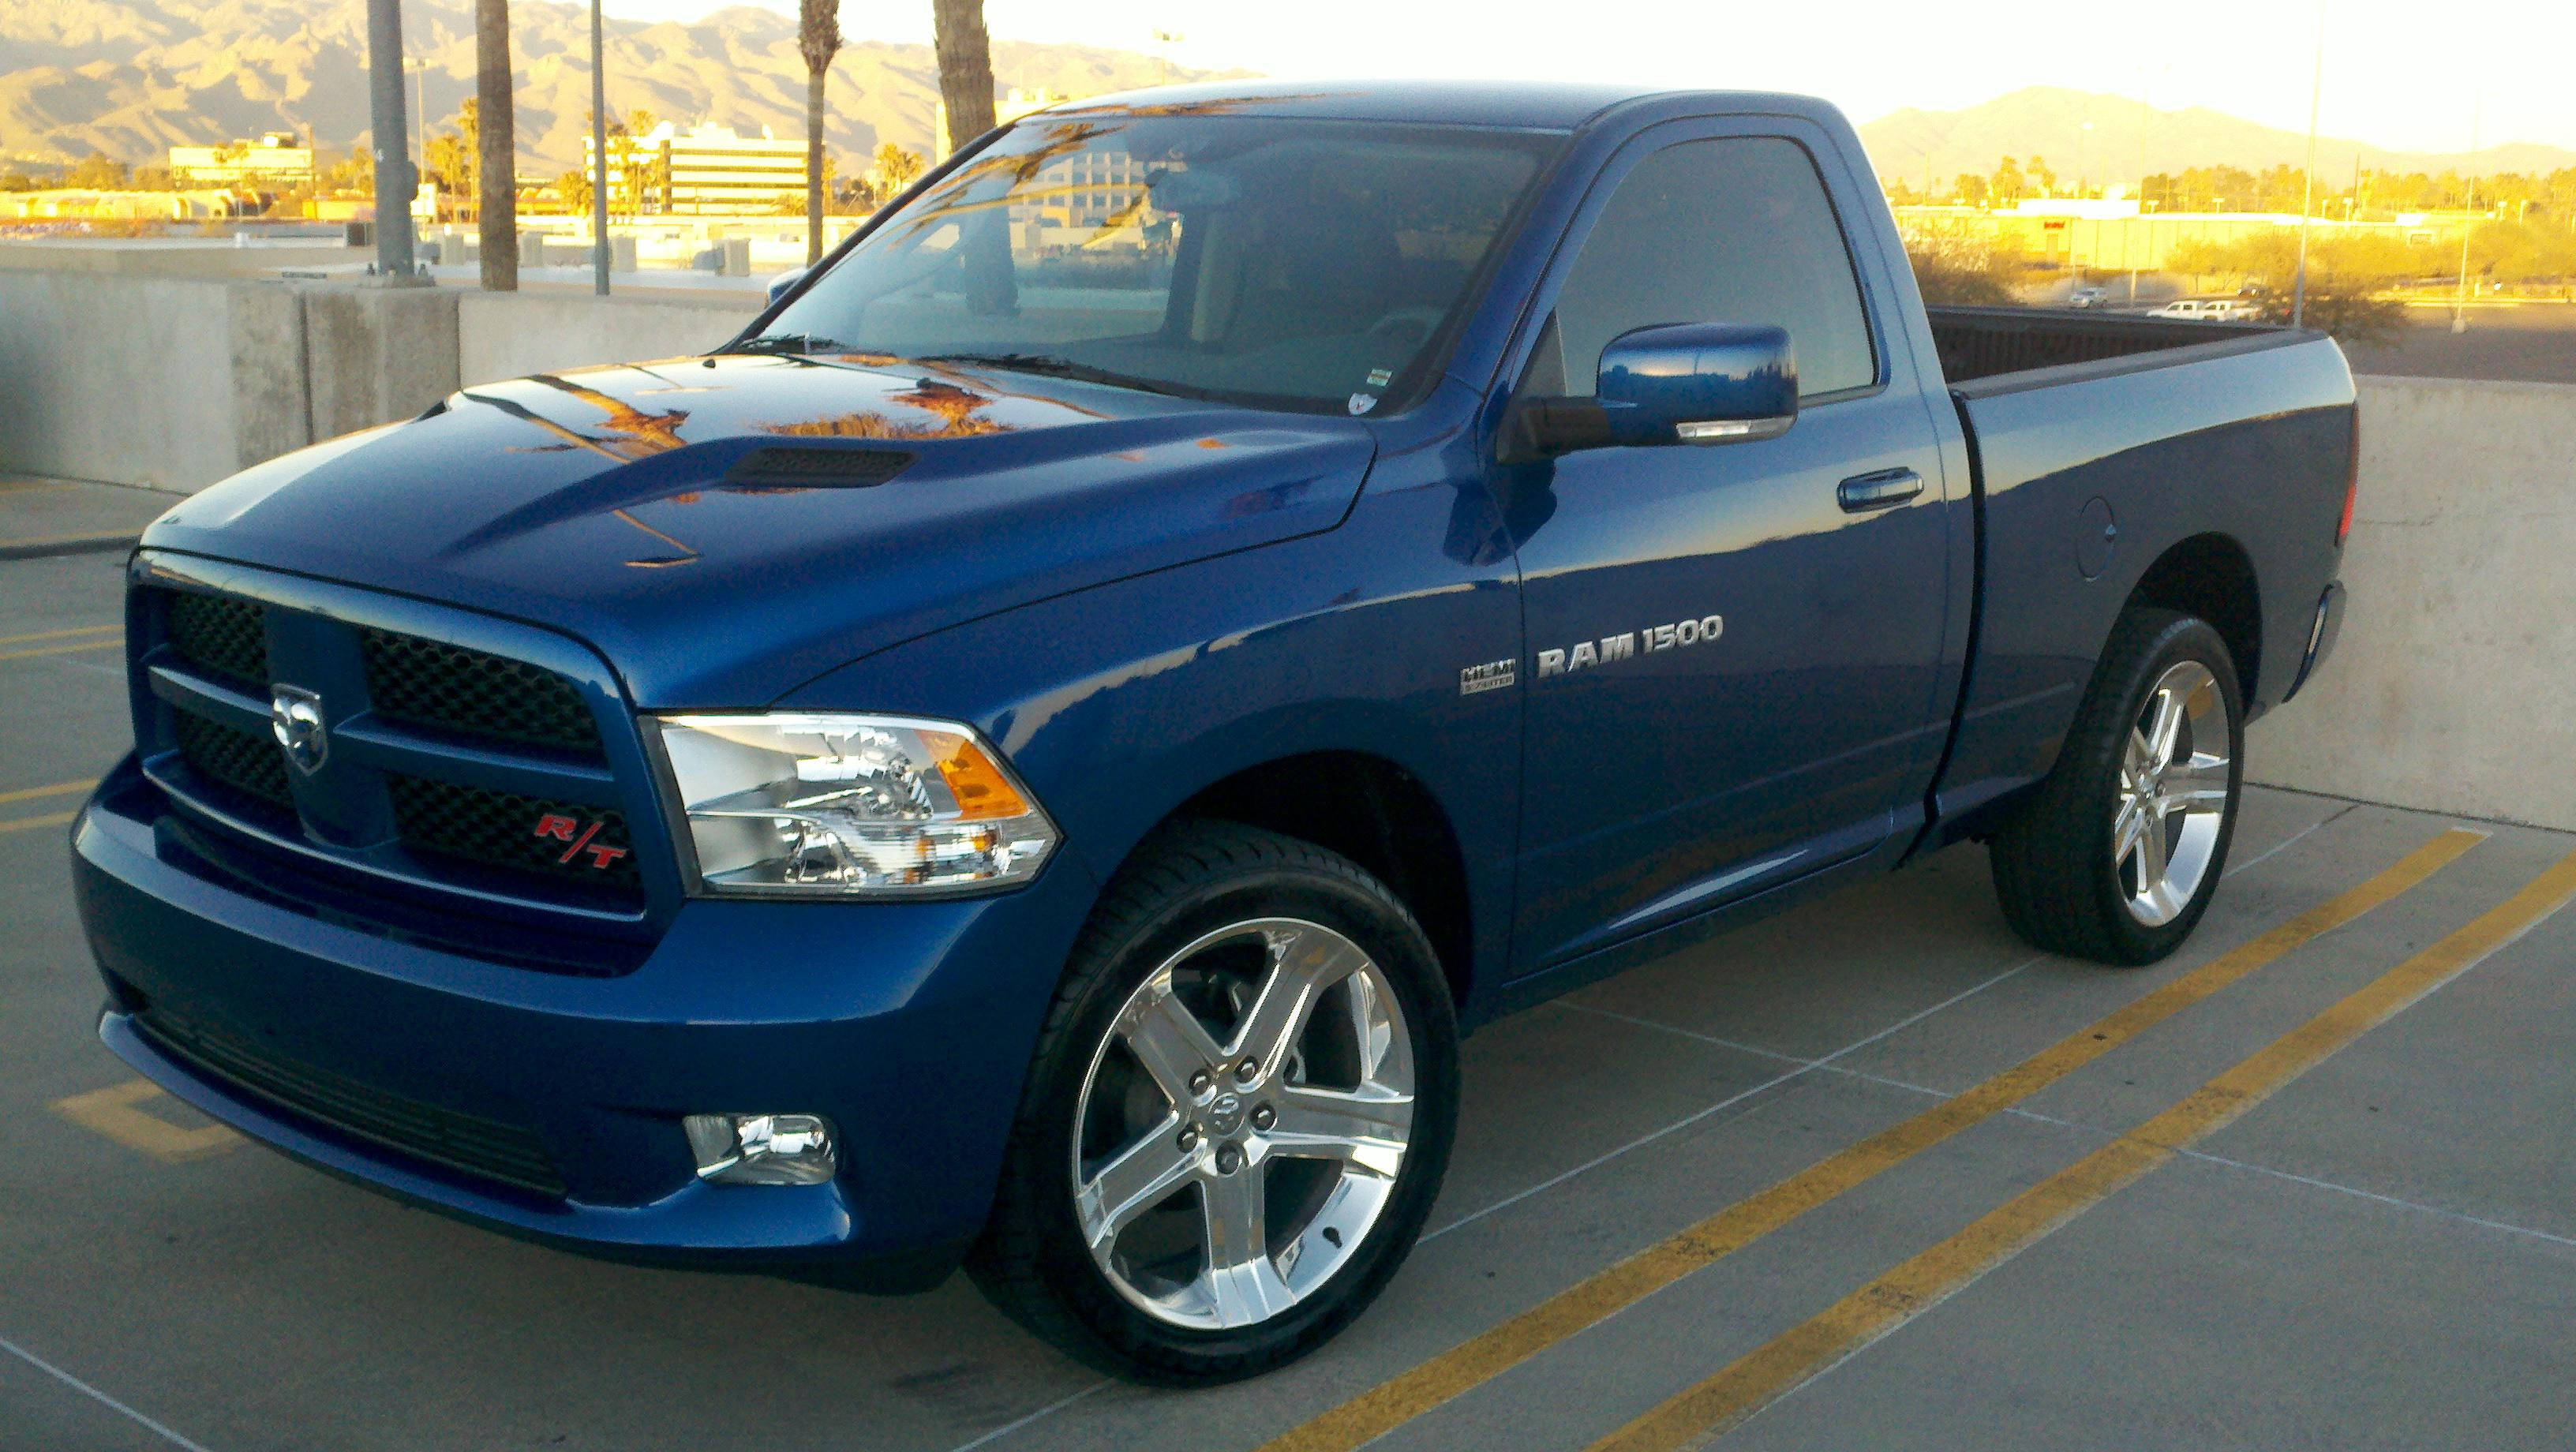 lukejohnrogers 2011 dodge ram 1500 regular cab specs photos modification info at cardomain. Black Bedroom Furniture Sets. Home Design Ideas